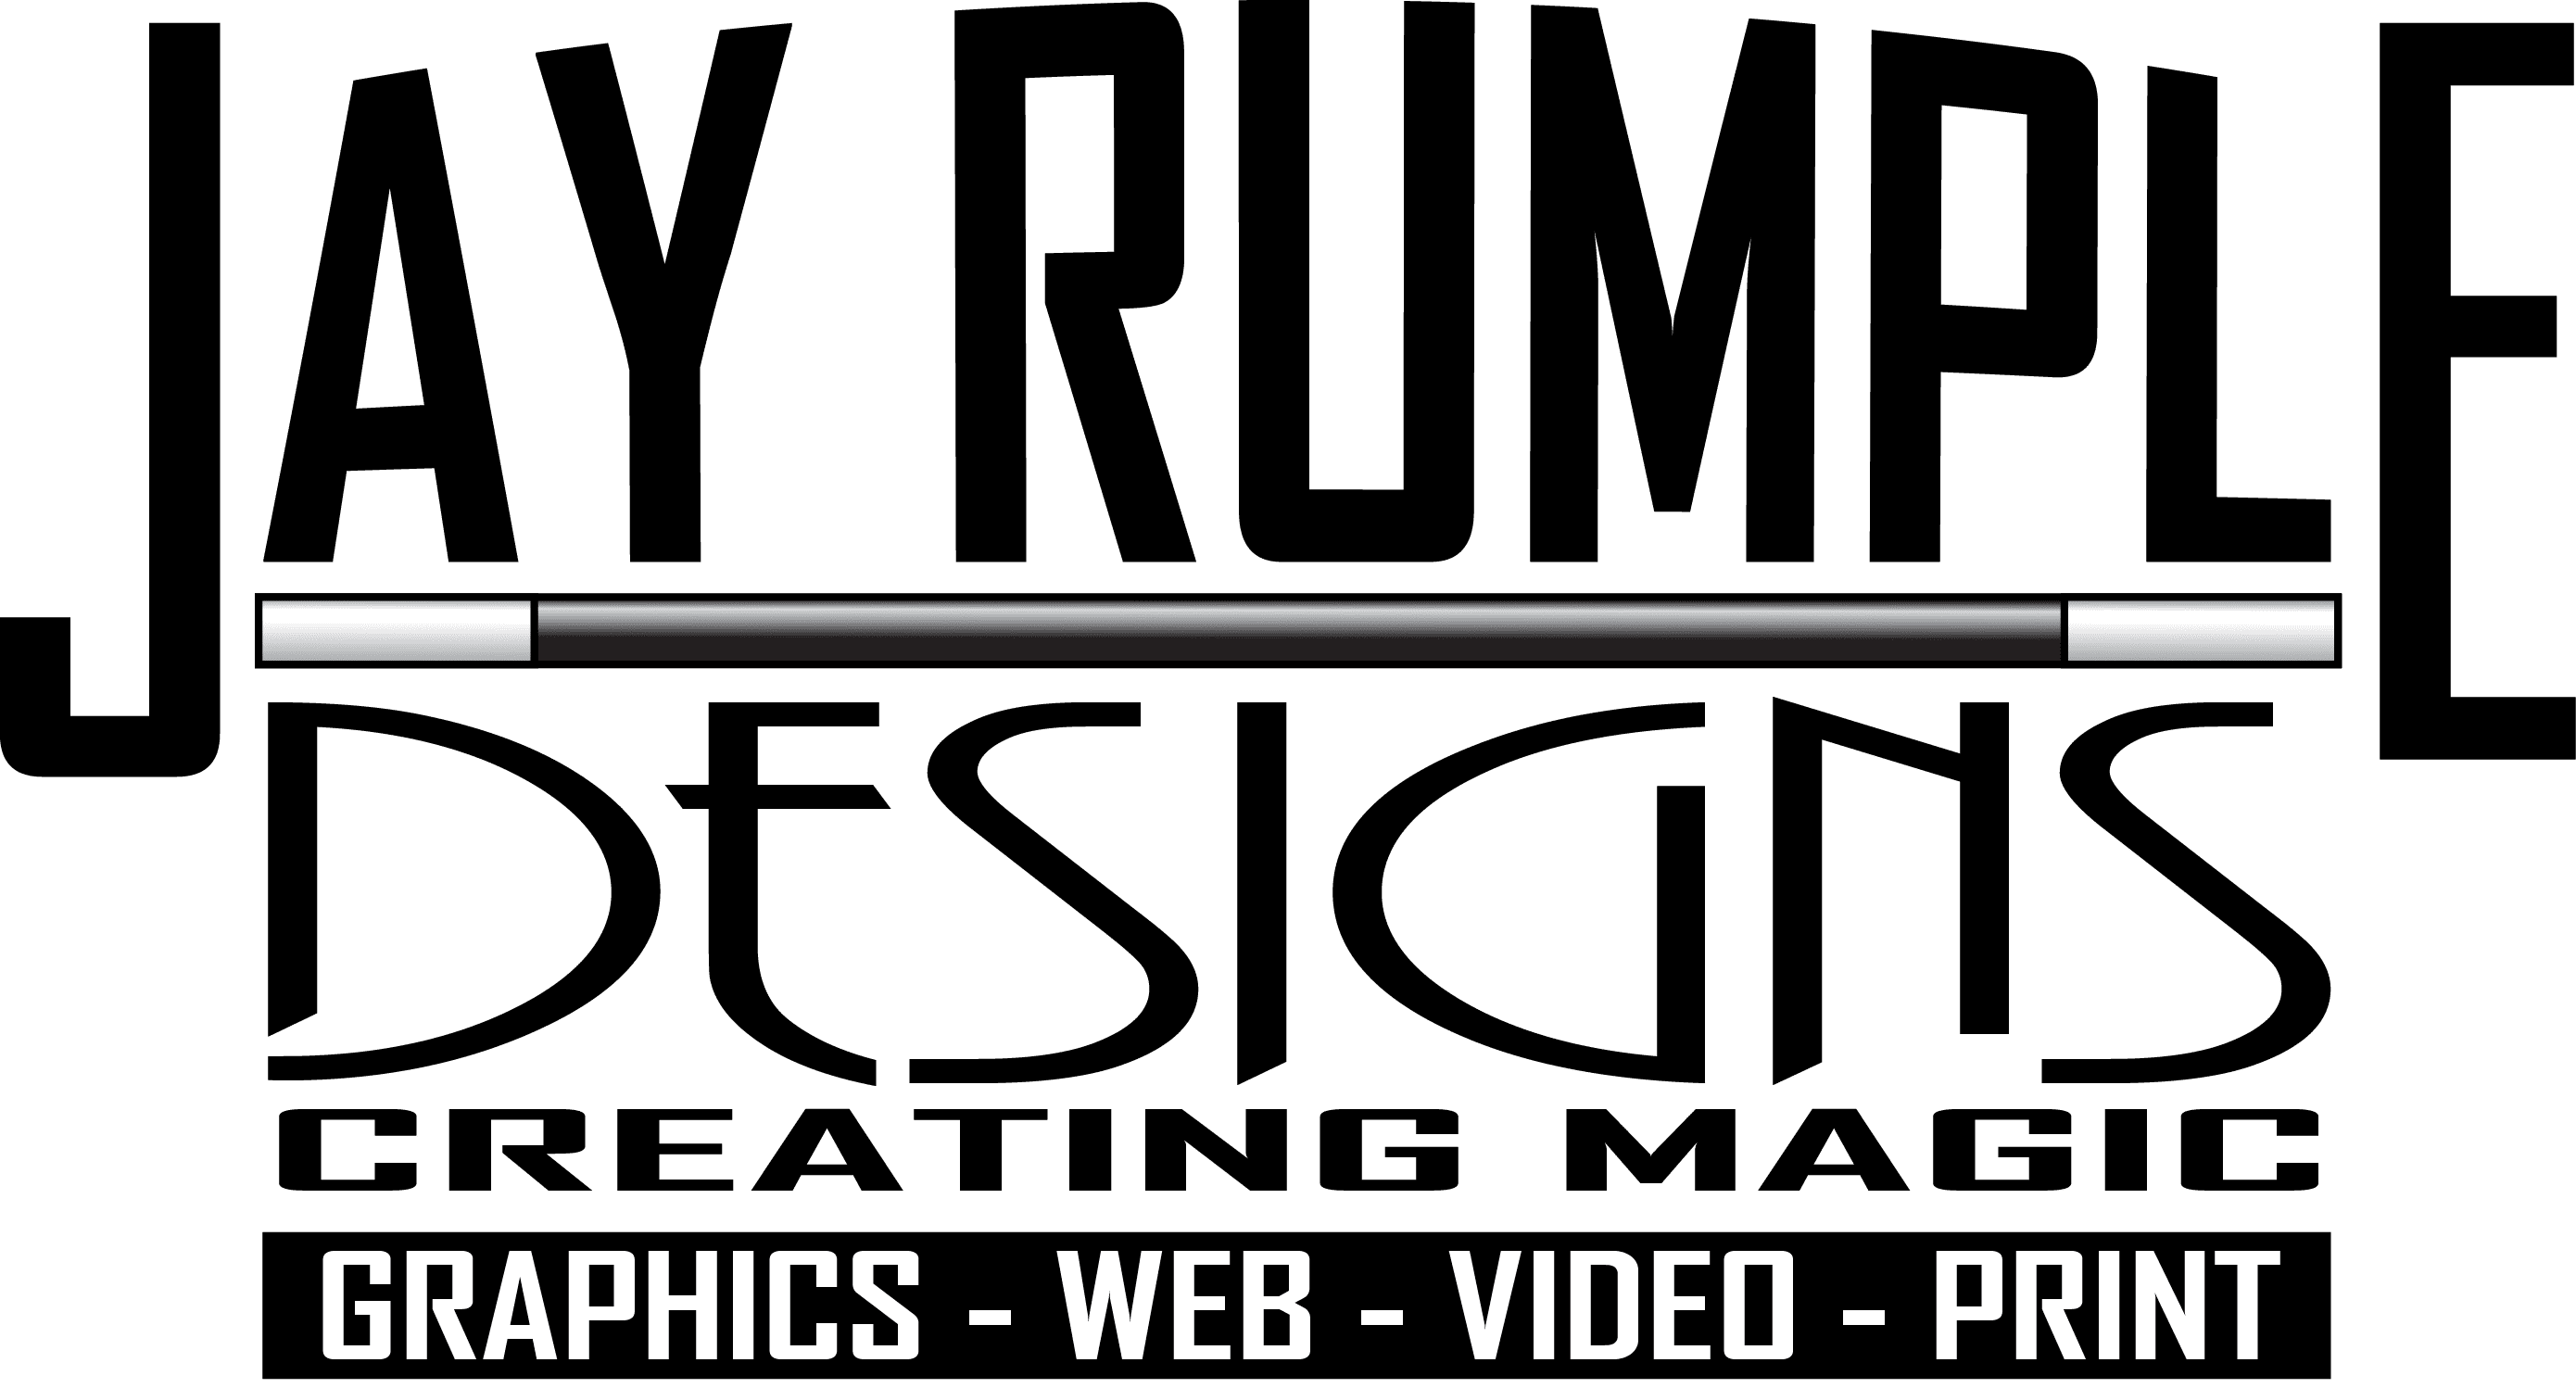 Jay Rumple Designs